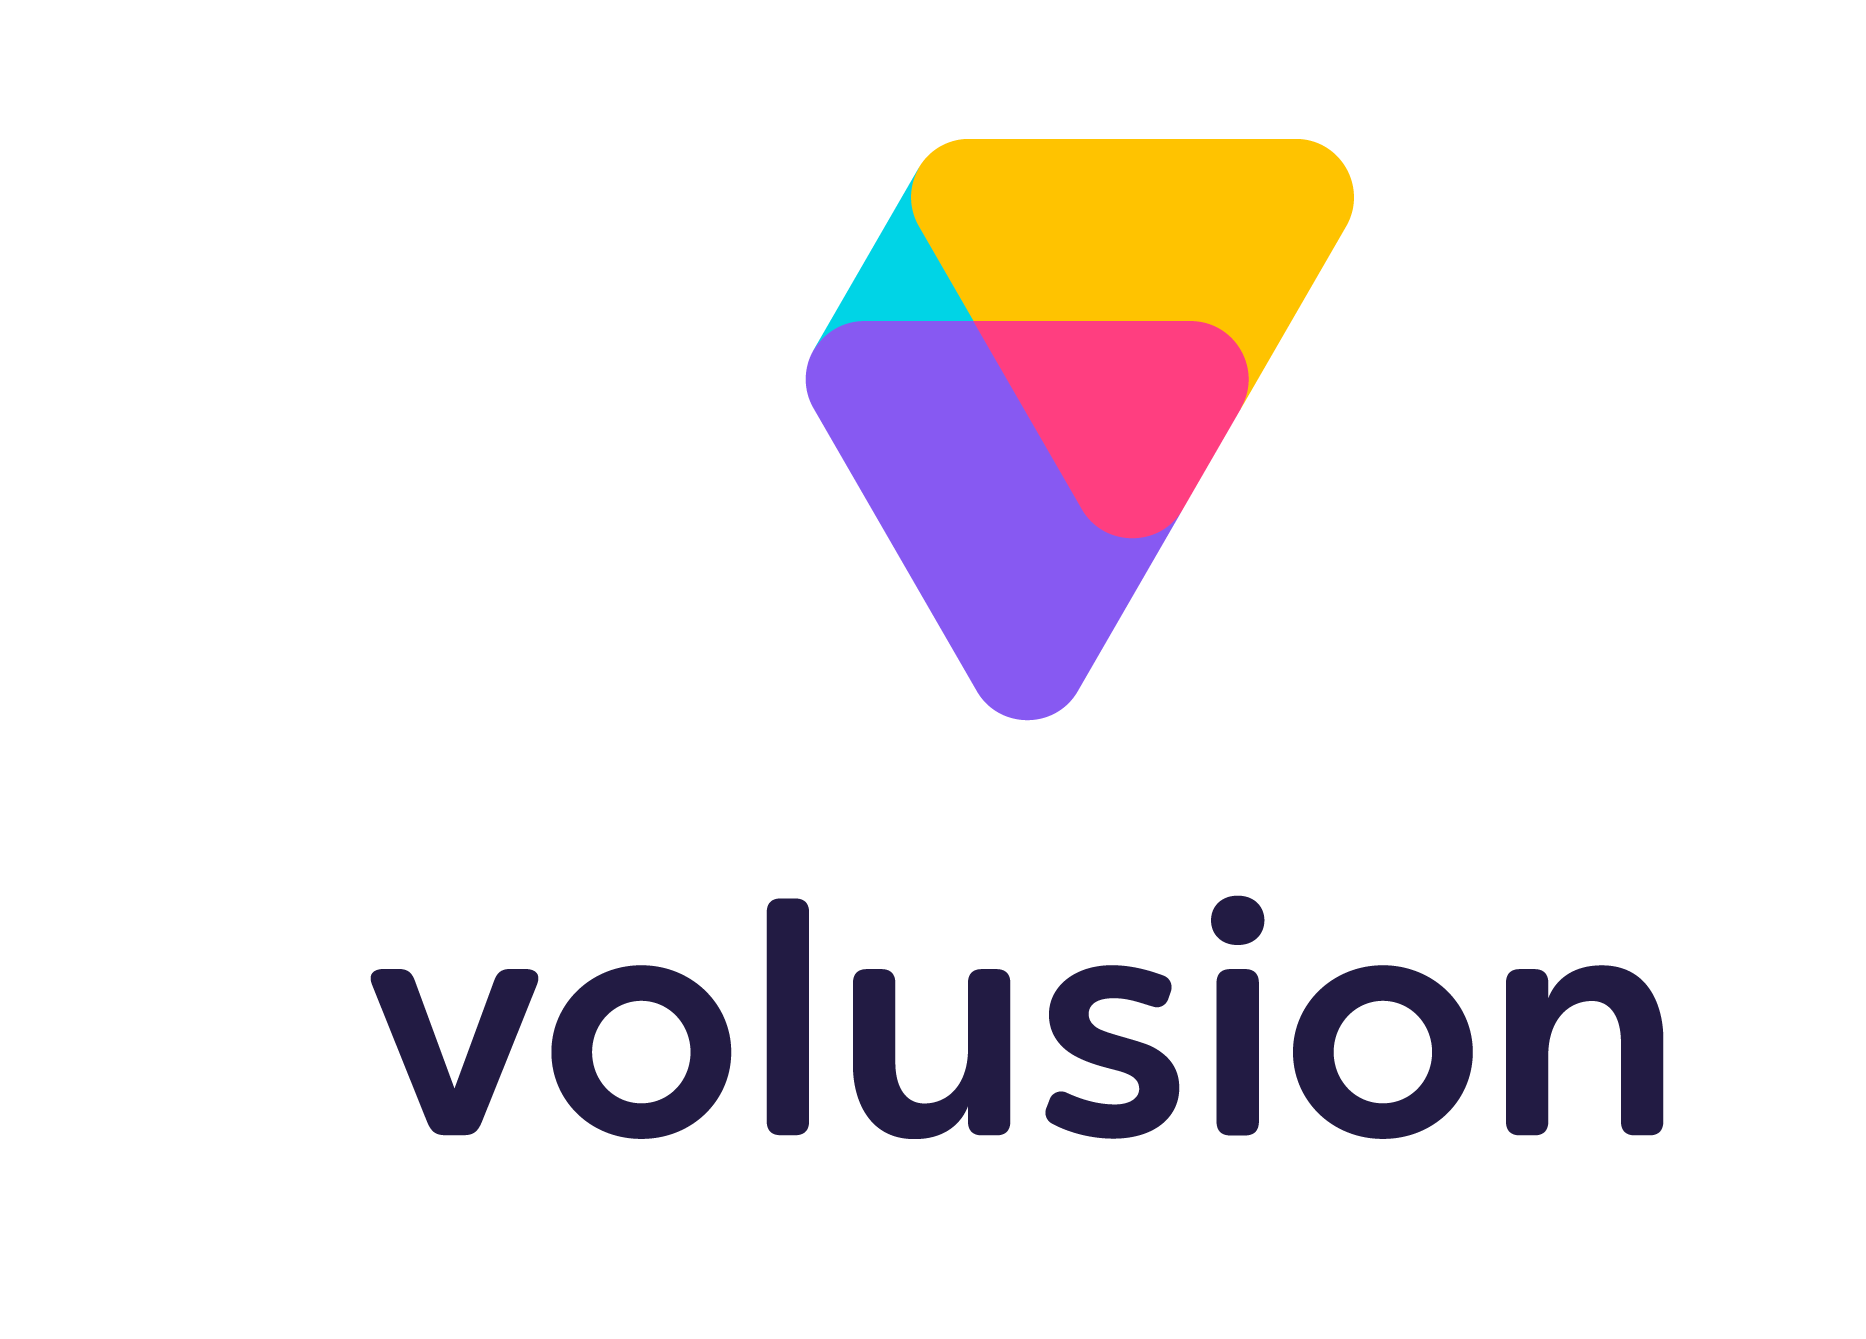 Volusion overview